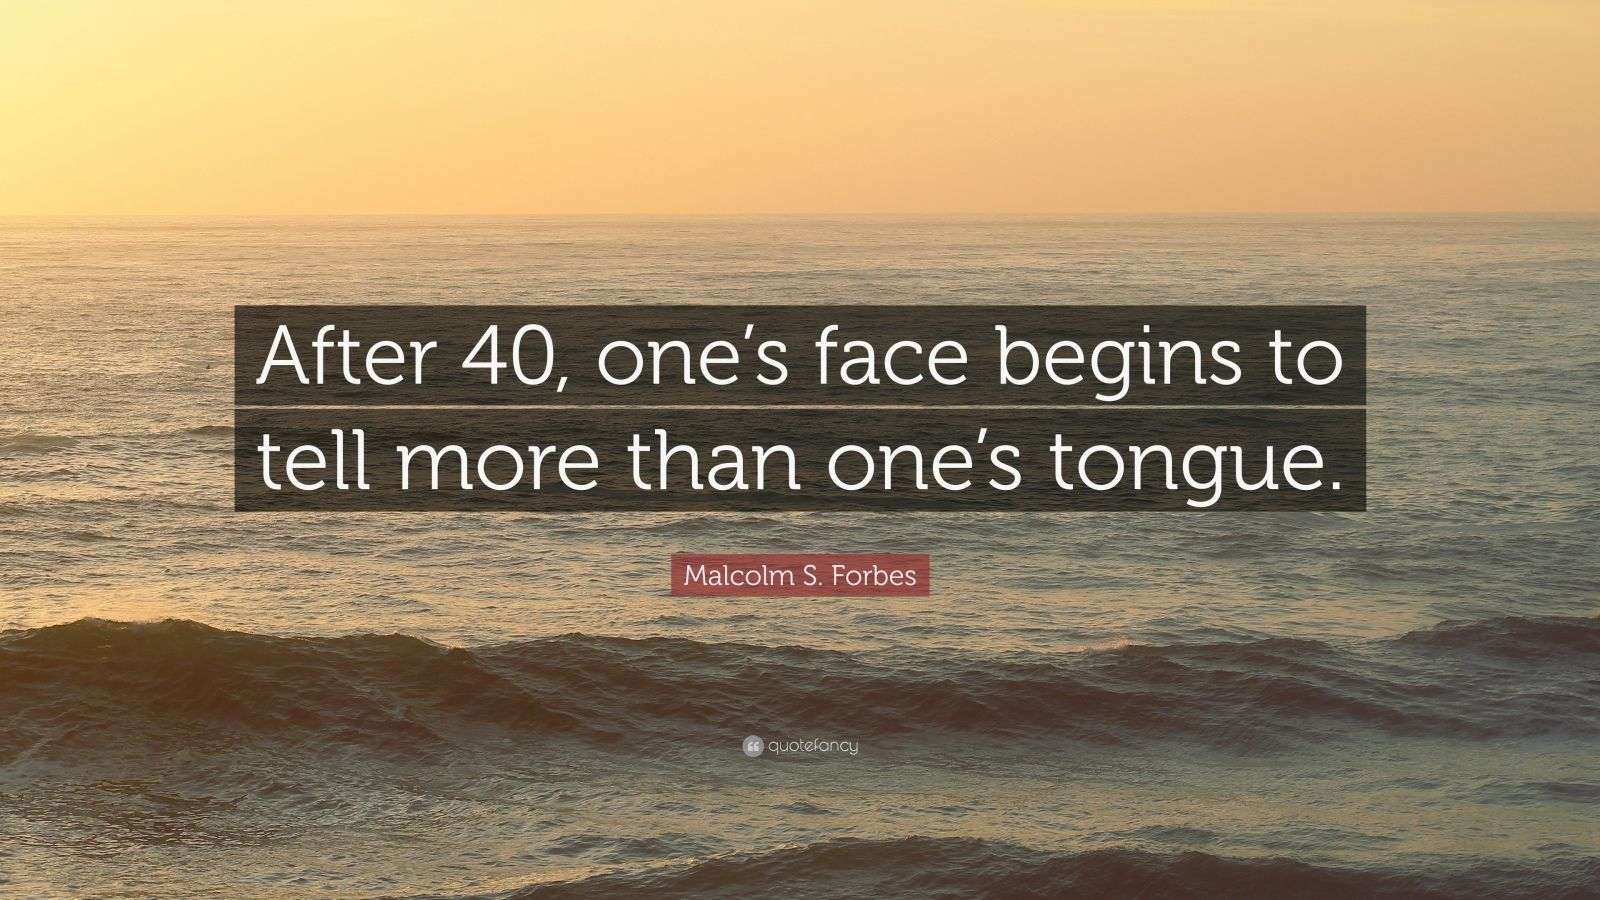 """Malcolm S. Forbes Quote: """"After 40, one's face begins to tell more than one's tongue."""""""